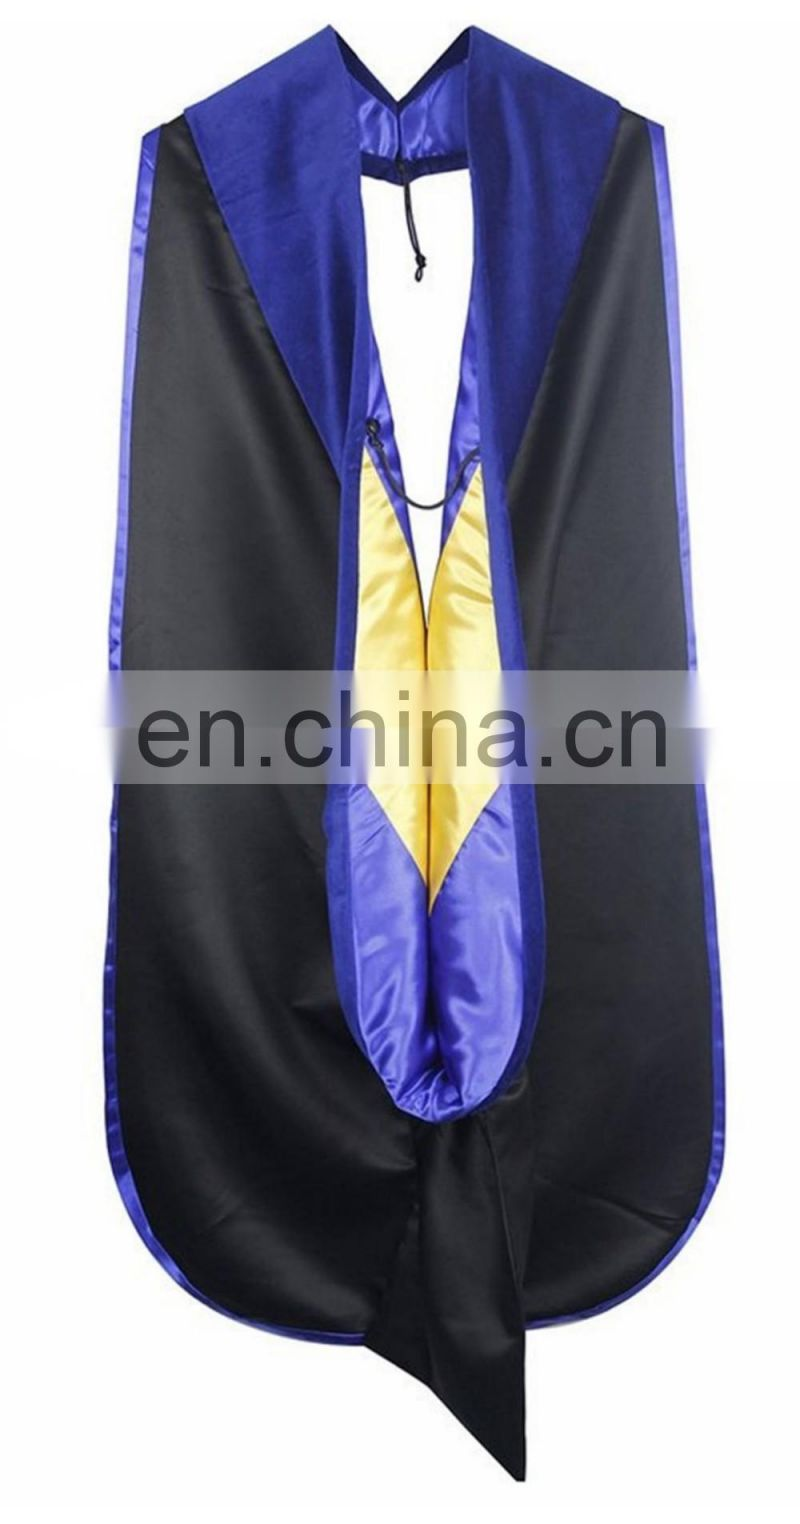 Wholesale Hot sale High quality Doctoral Graduation Hood